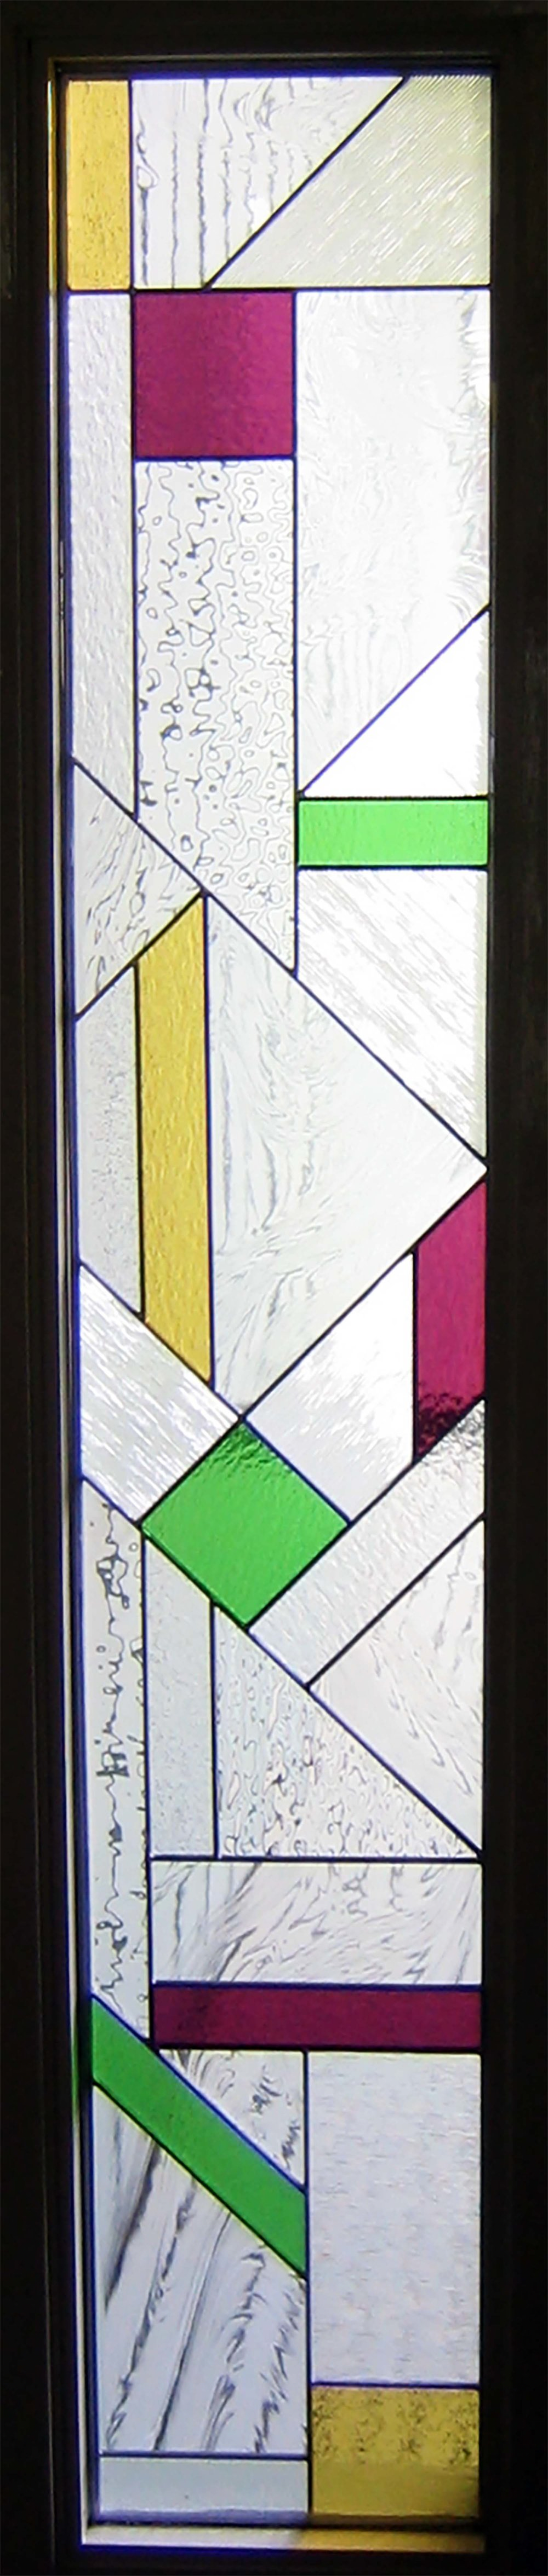 abstract art deco stained glass modern palo alto atherton menlo park san jose san francisco bay area legacy glass.jpg